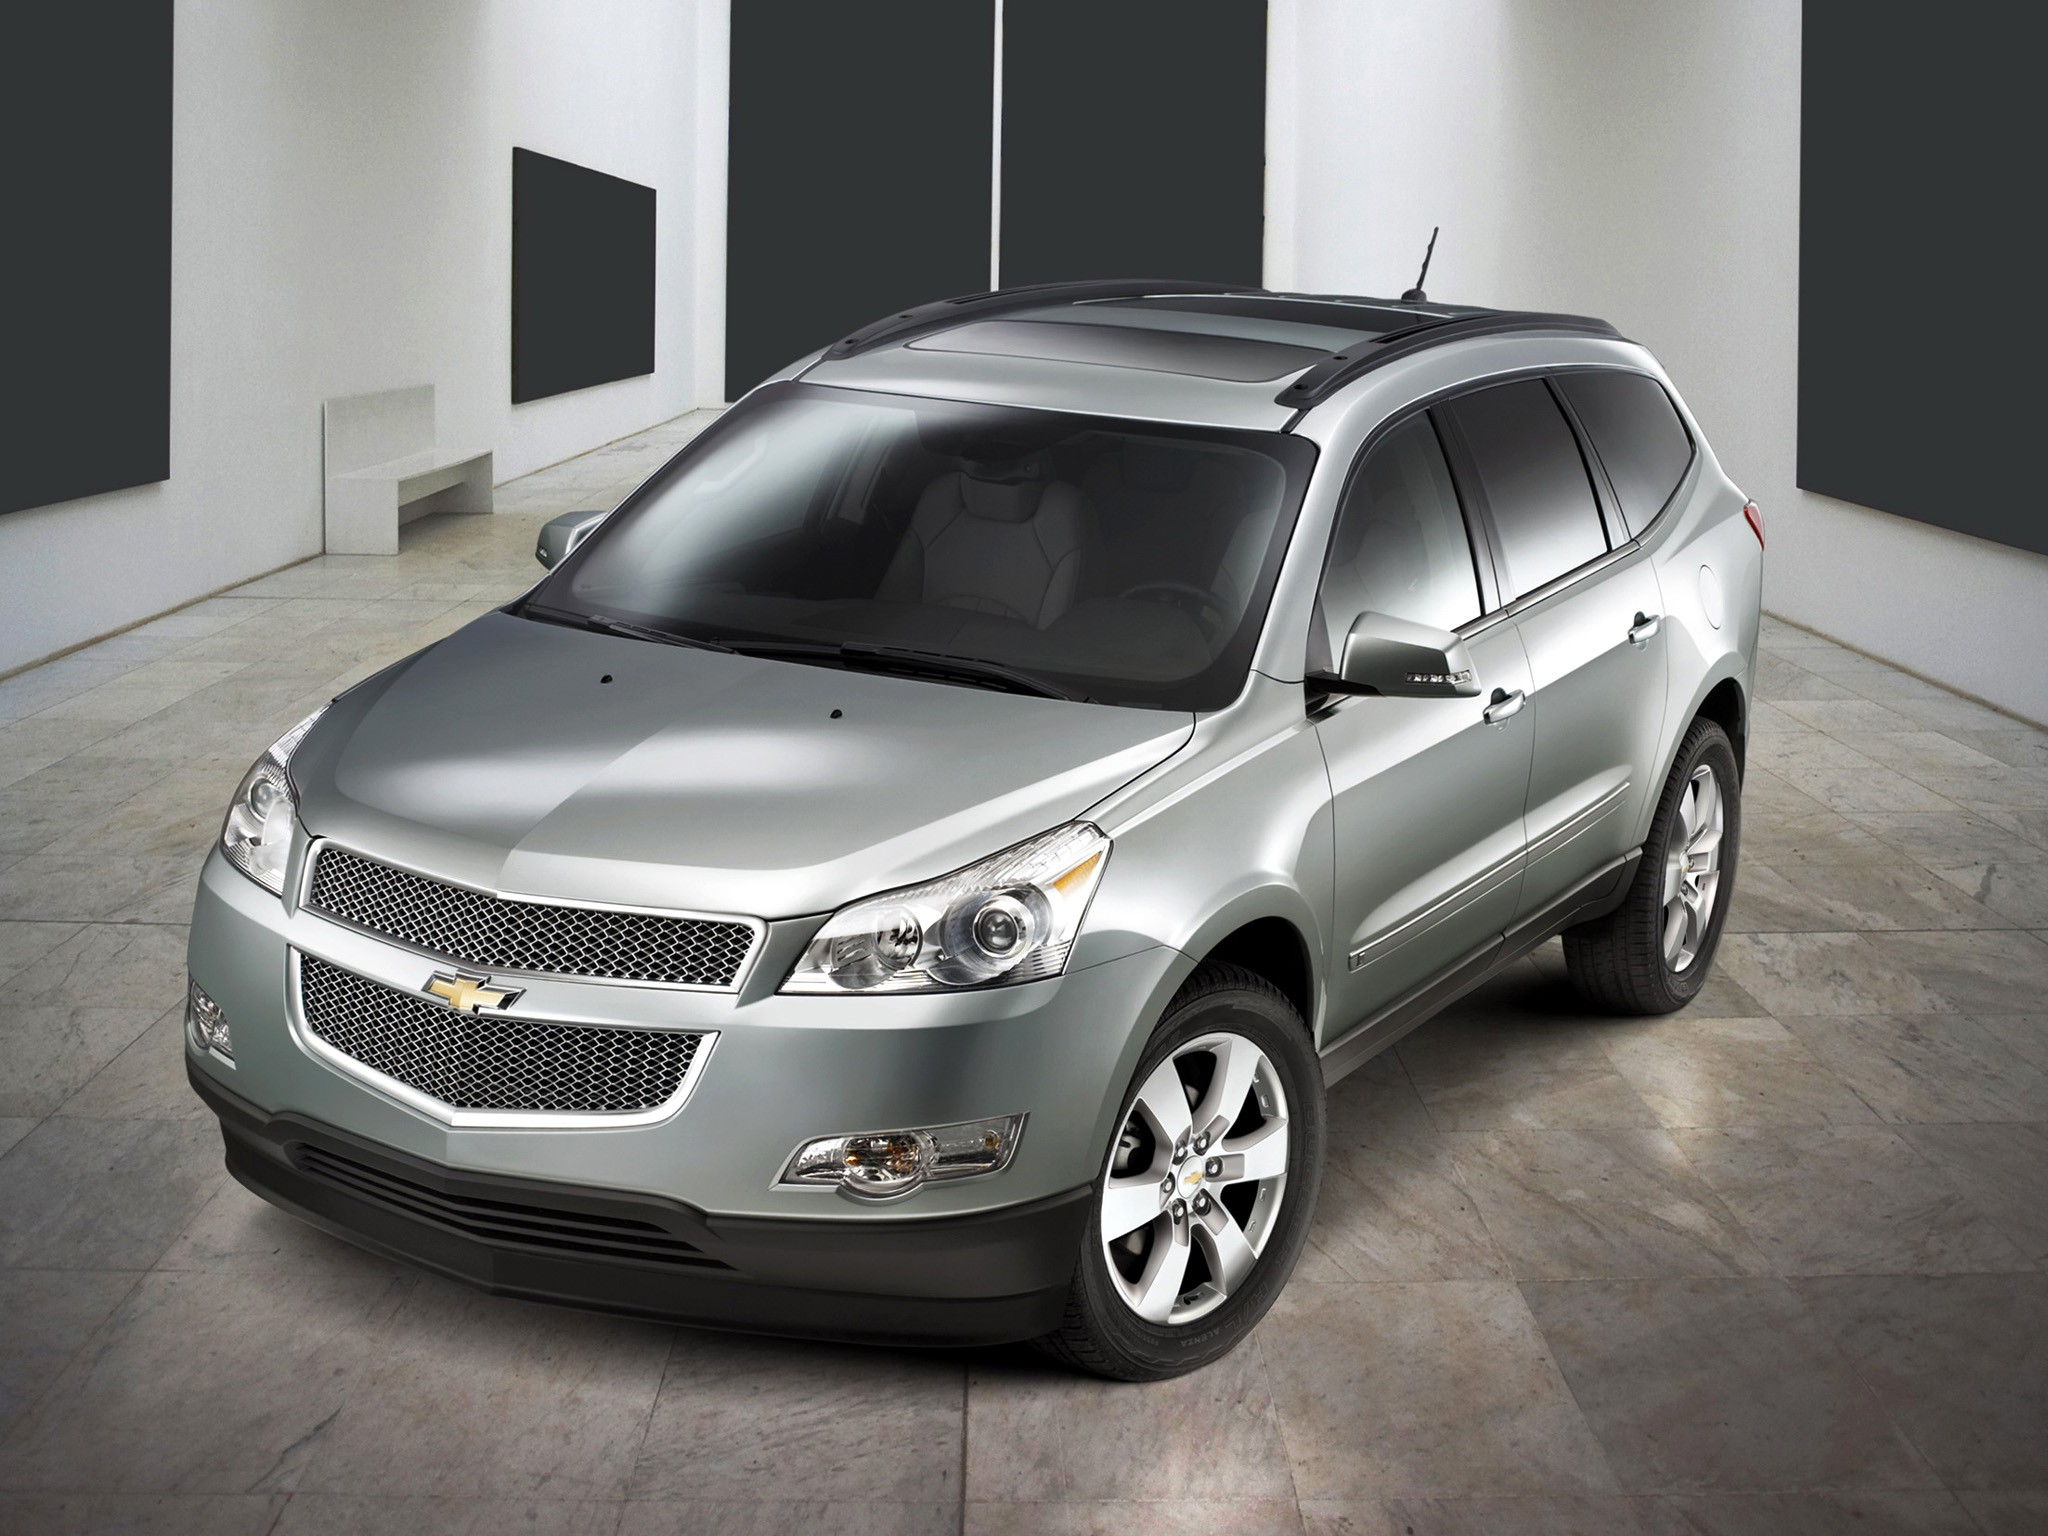 CHEVROLET Traverse specs & photos - 2008, 2009, 2010, 2011 ...